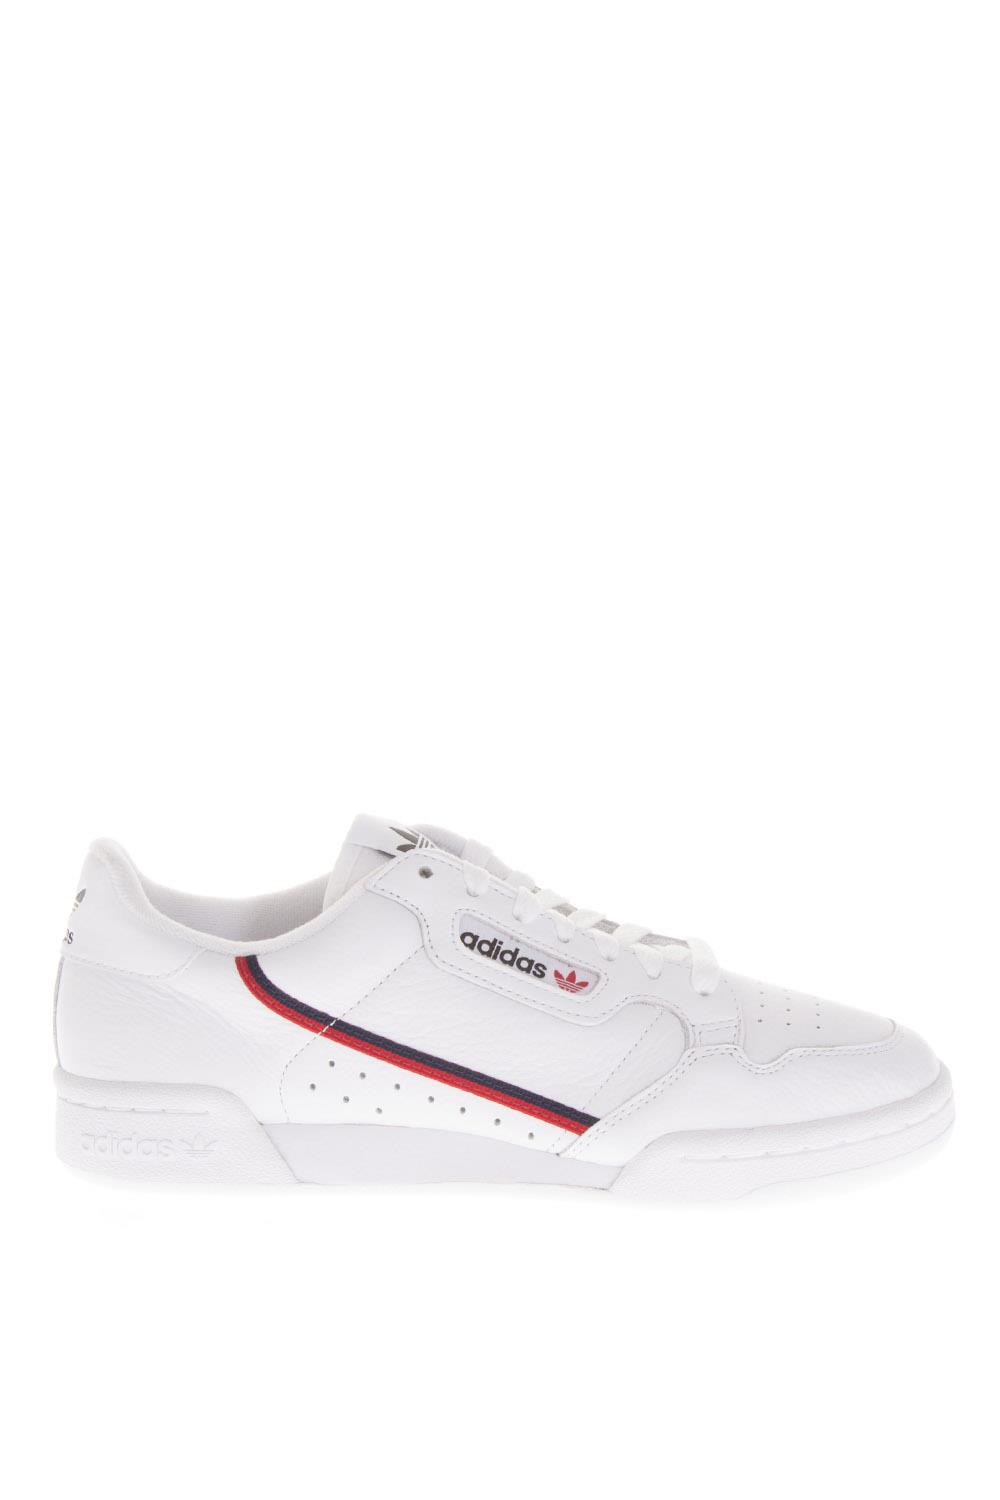 17f9233ac45a9 CONTINENTAL 80 WHITE LEATHER SNEAKERS FW 2018 - ADIDAS ORIGINALS - Boutique  Galiano